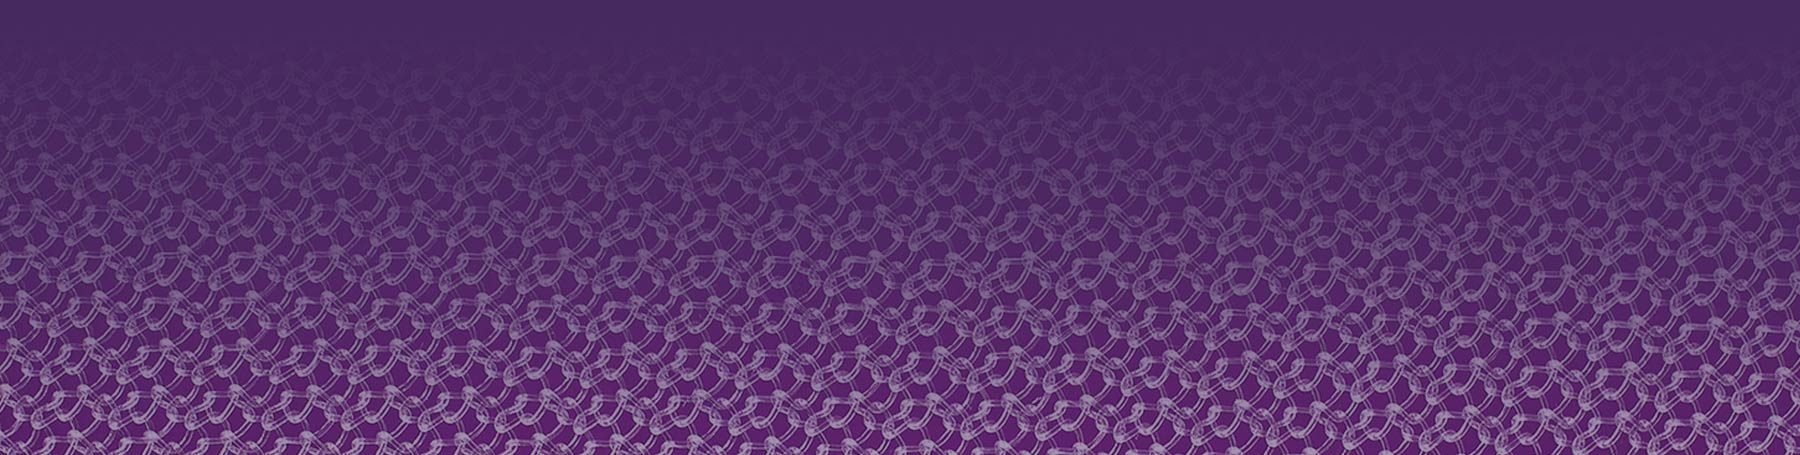 Monofilament Surgical Mesh Detail with Purple Overlay